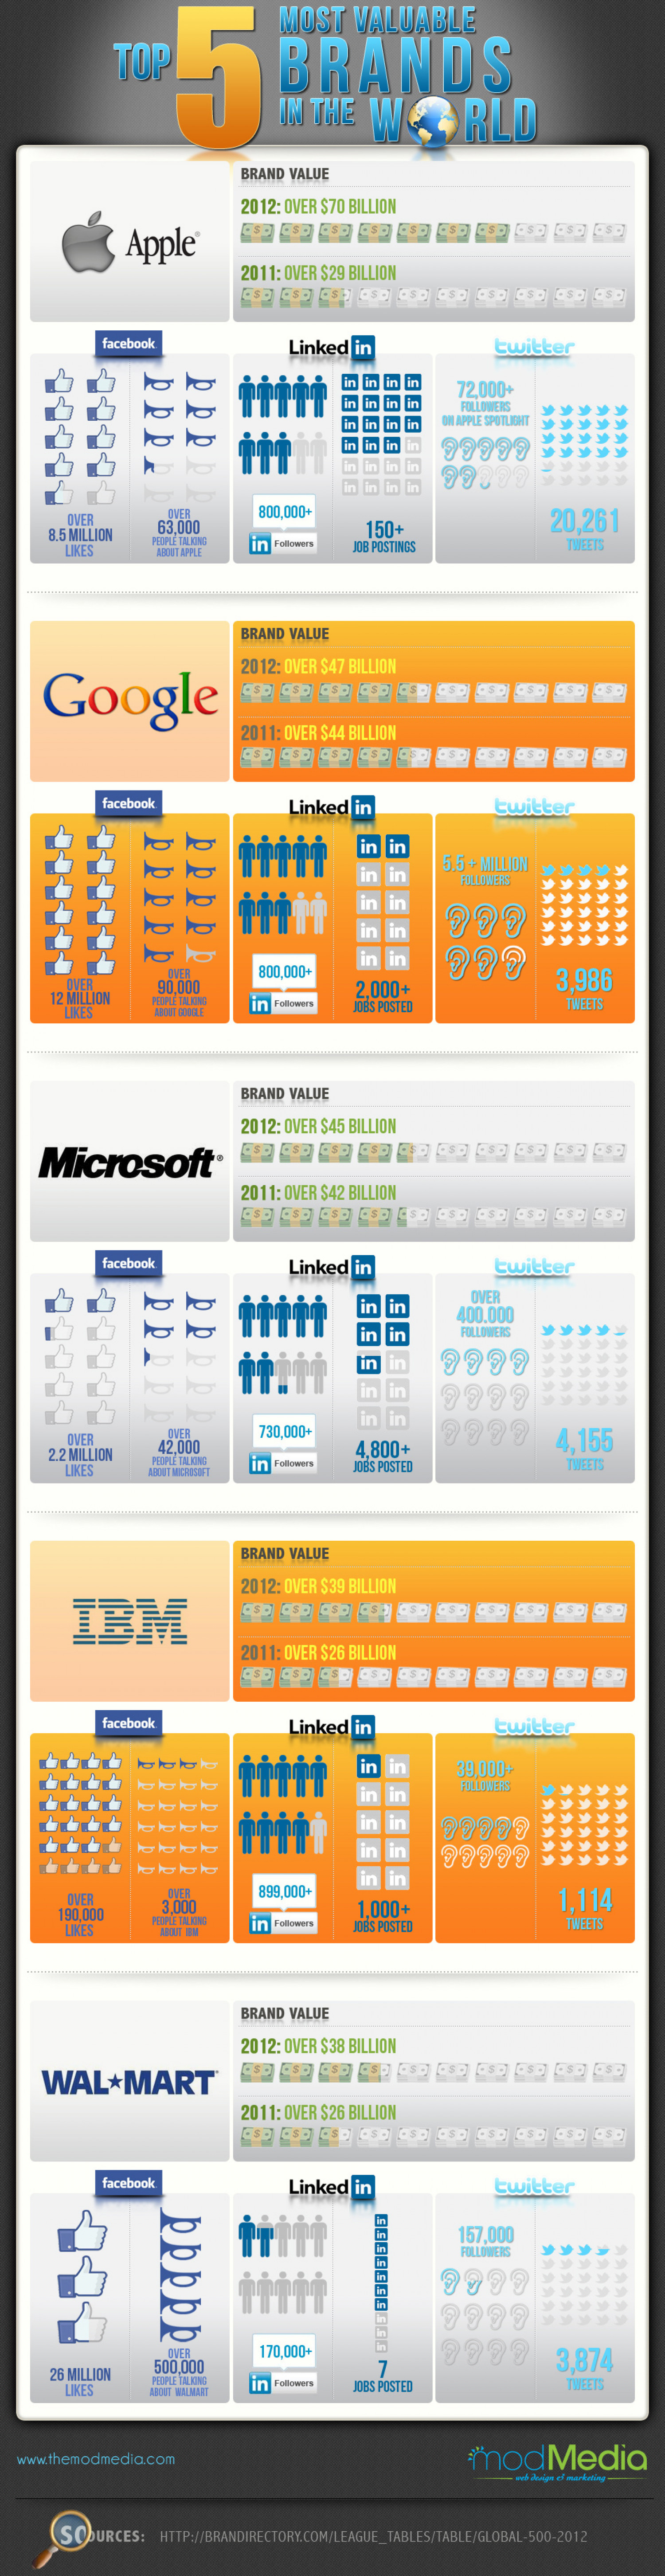 The 5 Most Valuable Brands in the World  Infographic